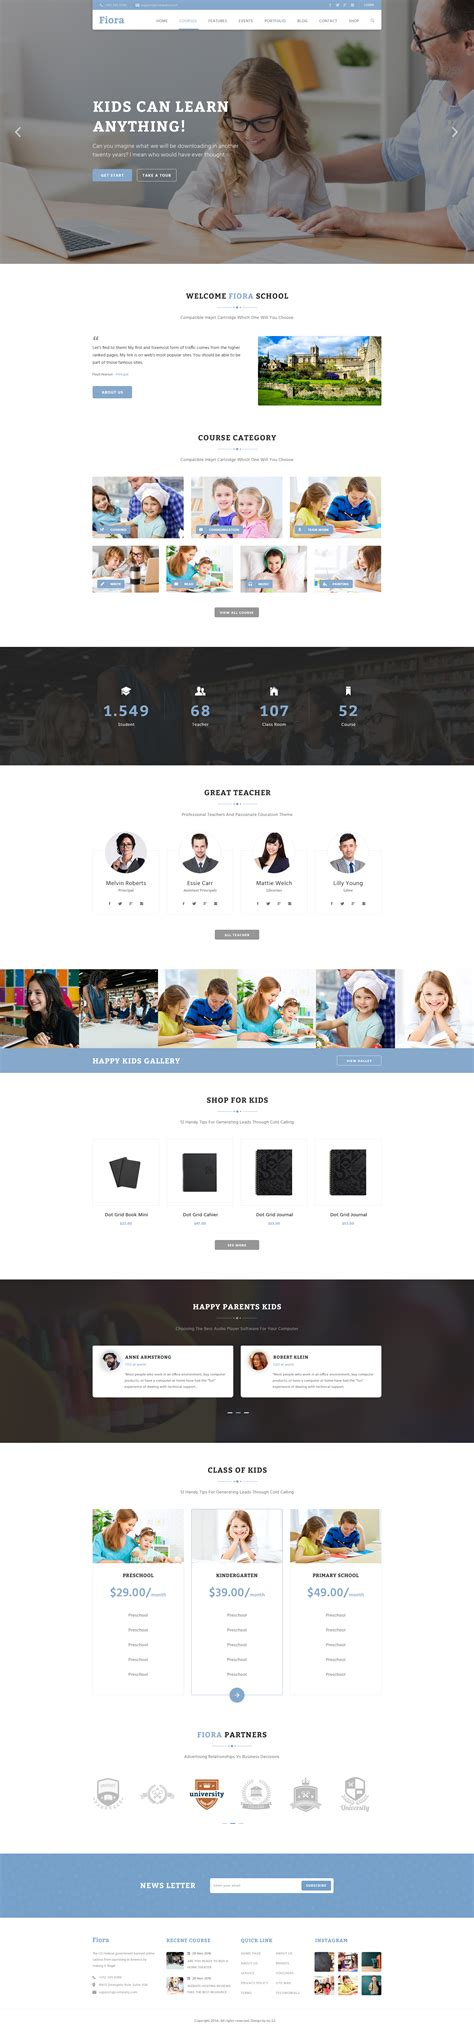 fiora item fiora education psd template by tiepnk themeforest